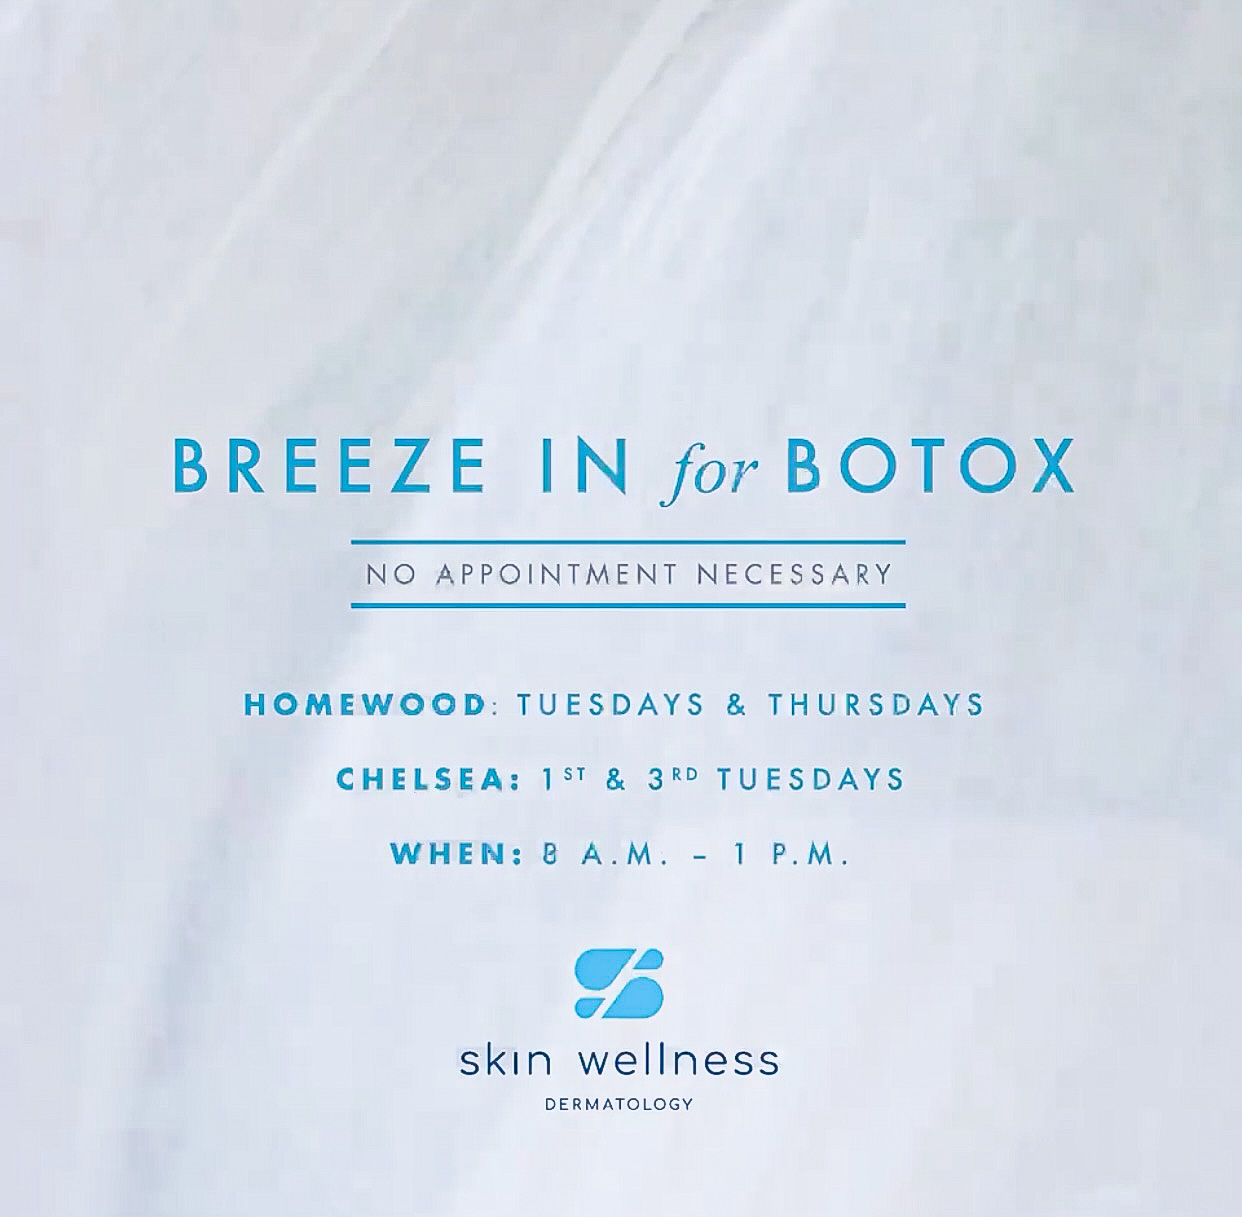 Breeze in for Botox